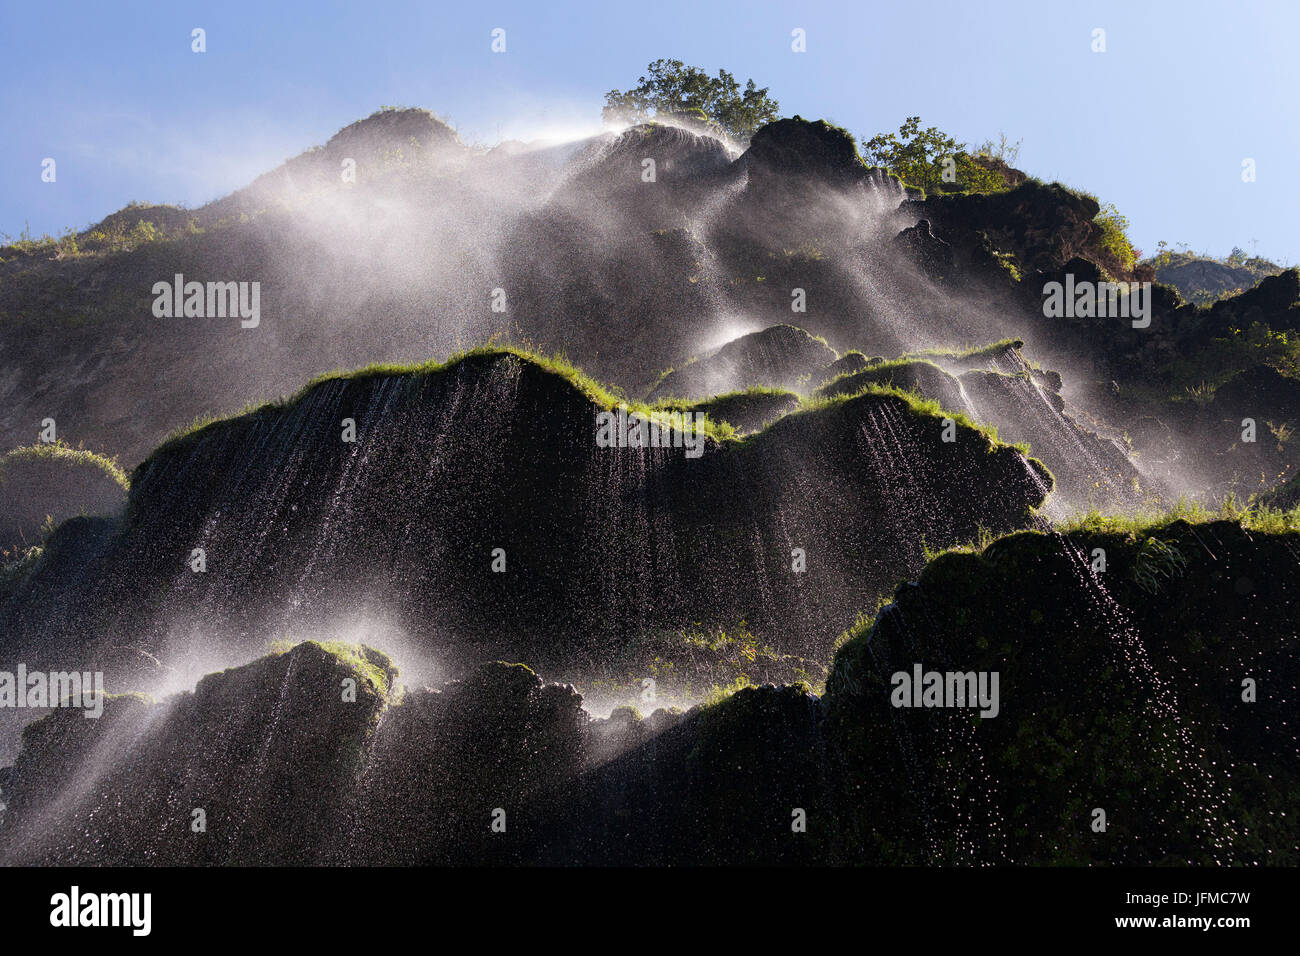 Christmas Tree Waterfall, Sumidero Canyon, Chiapas, Mexico, - Stock Image